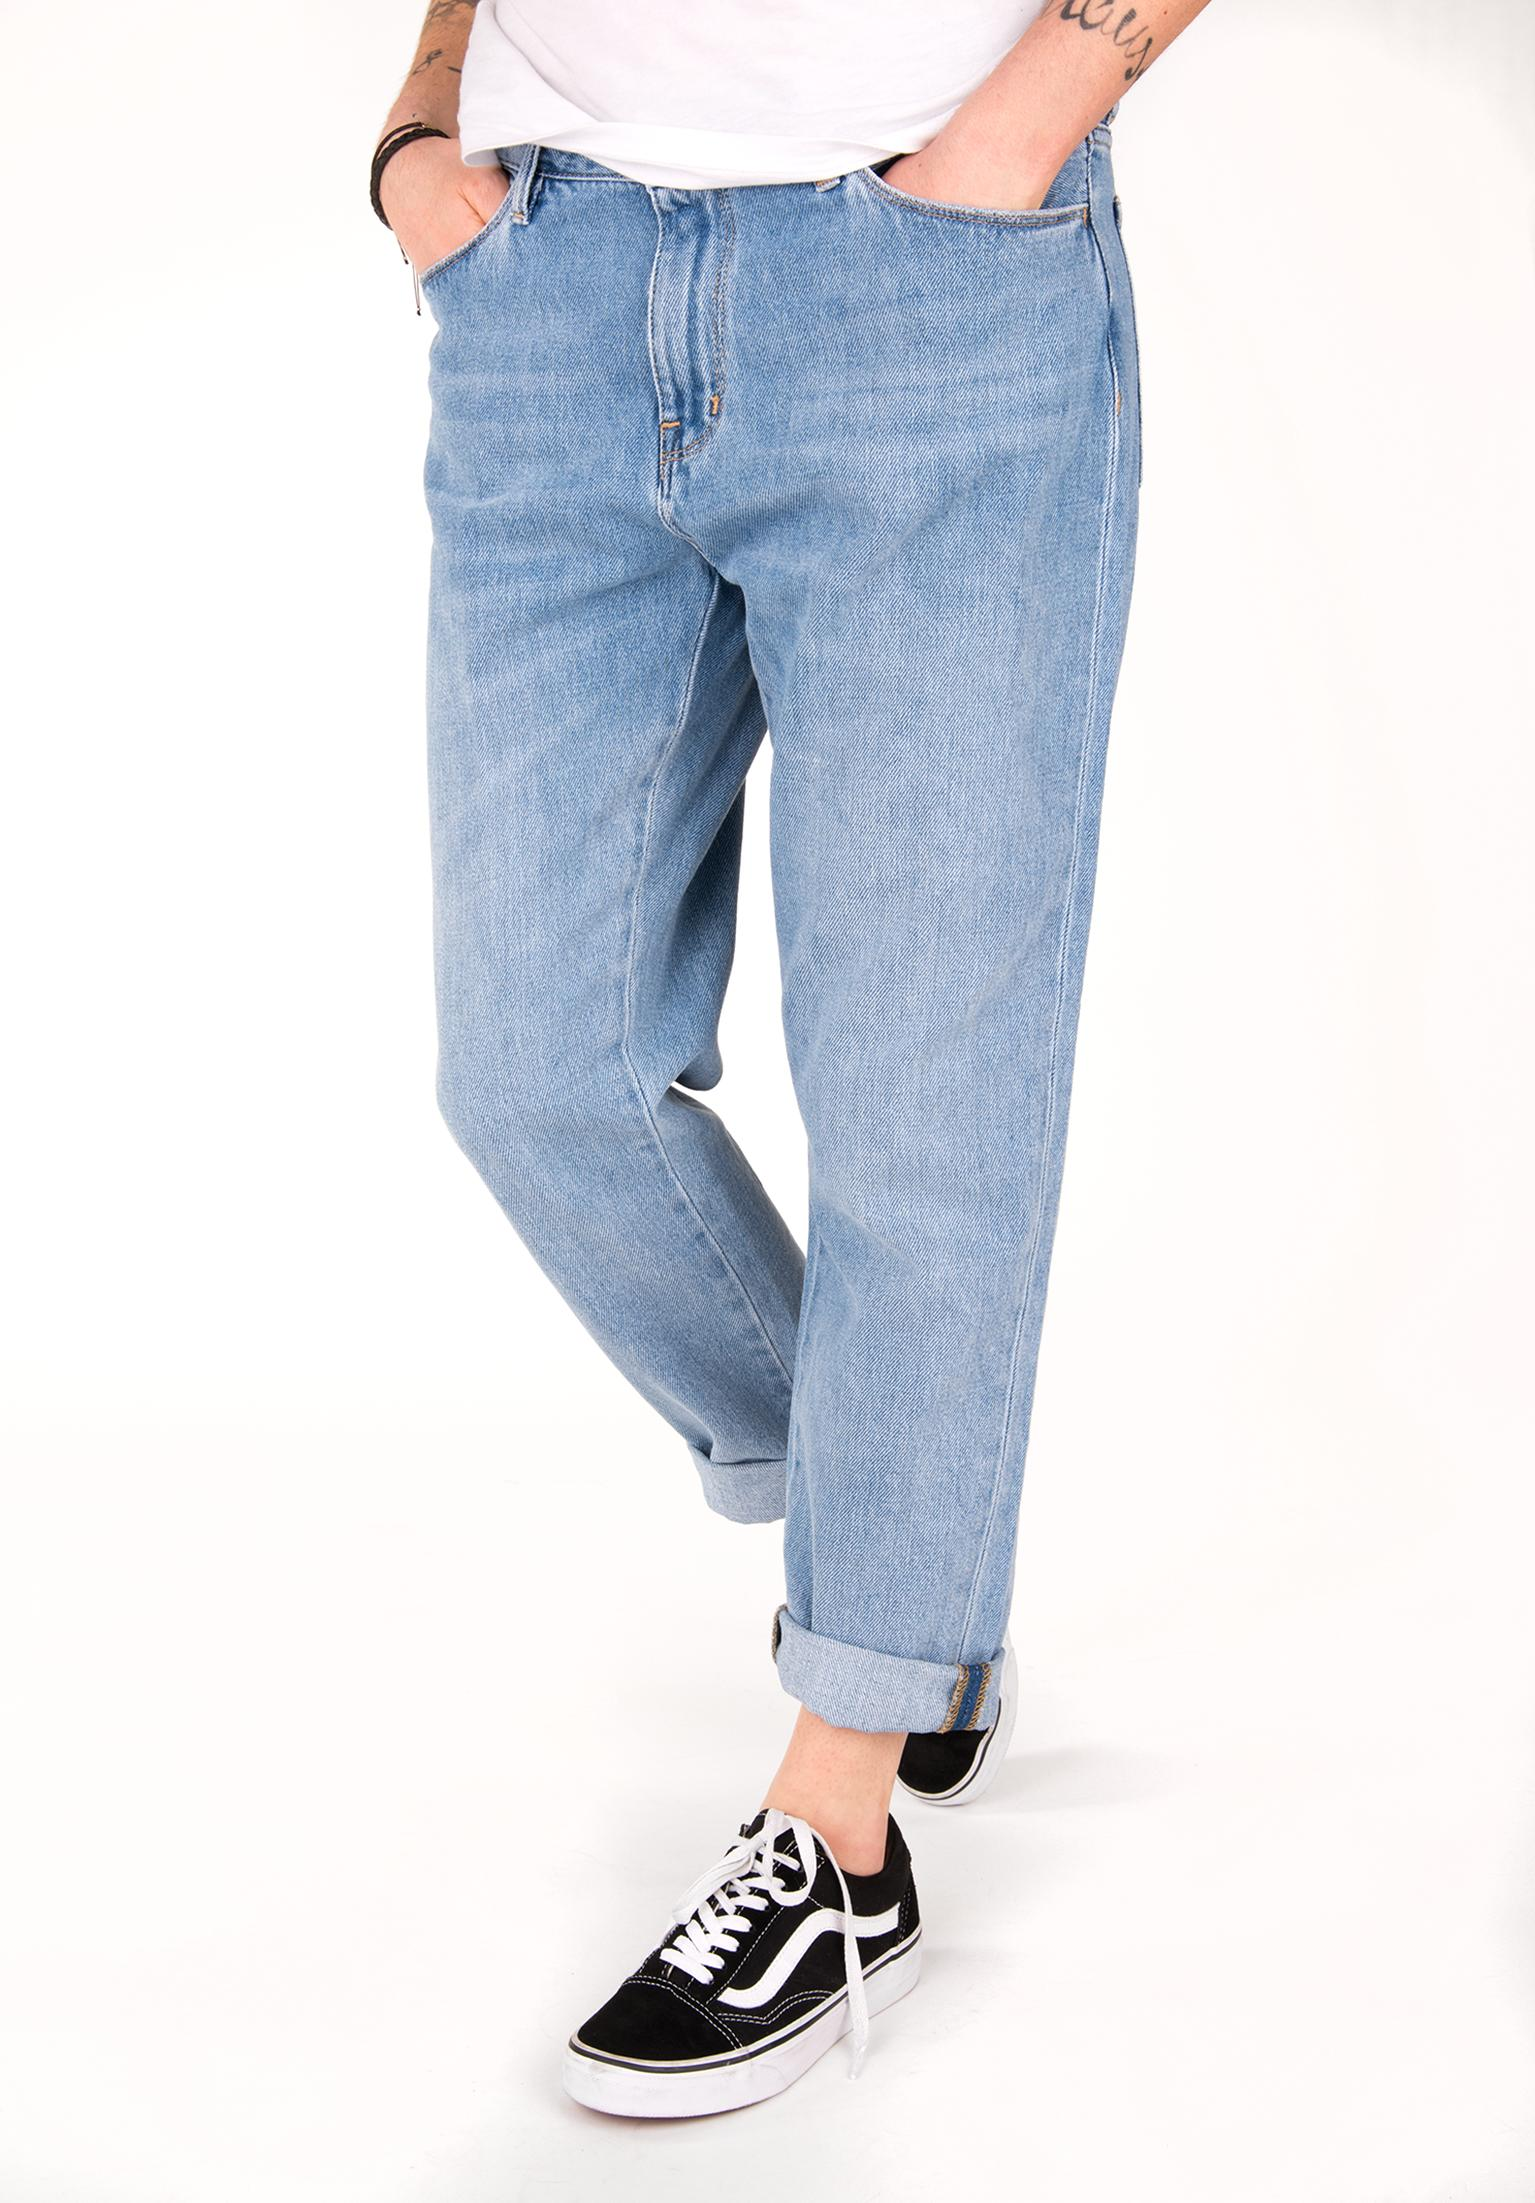 W  Domino Carhartt WIP Jeans in blue-lightstonewashed for Women   Titus 71992e4055